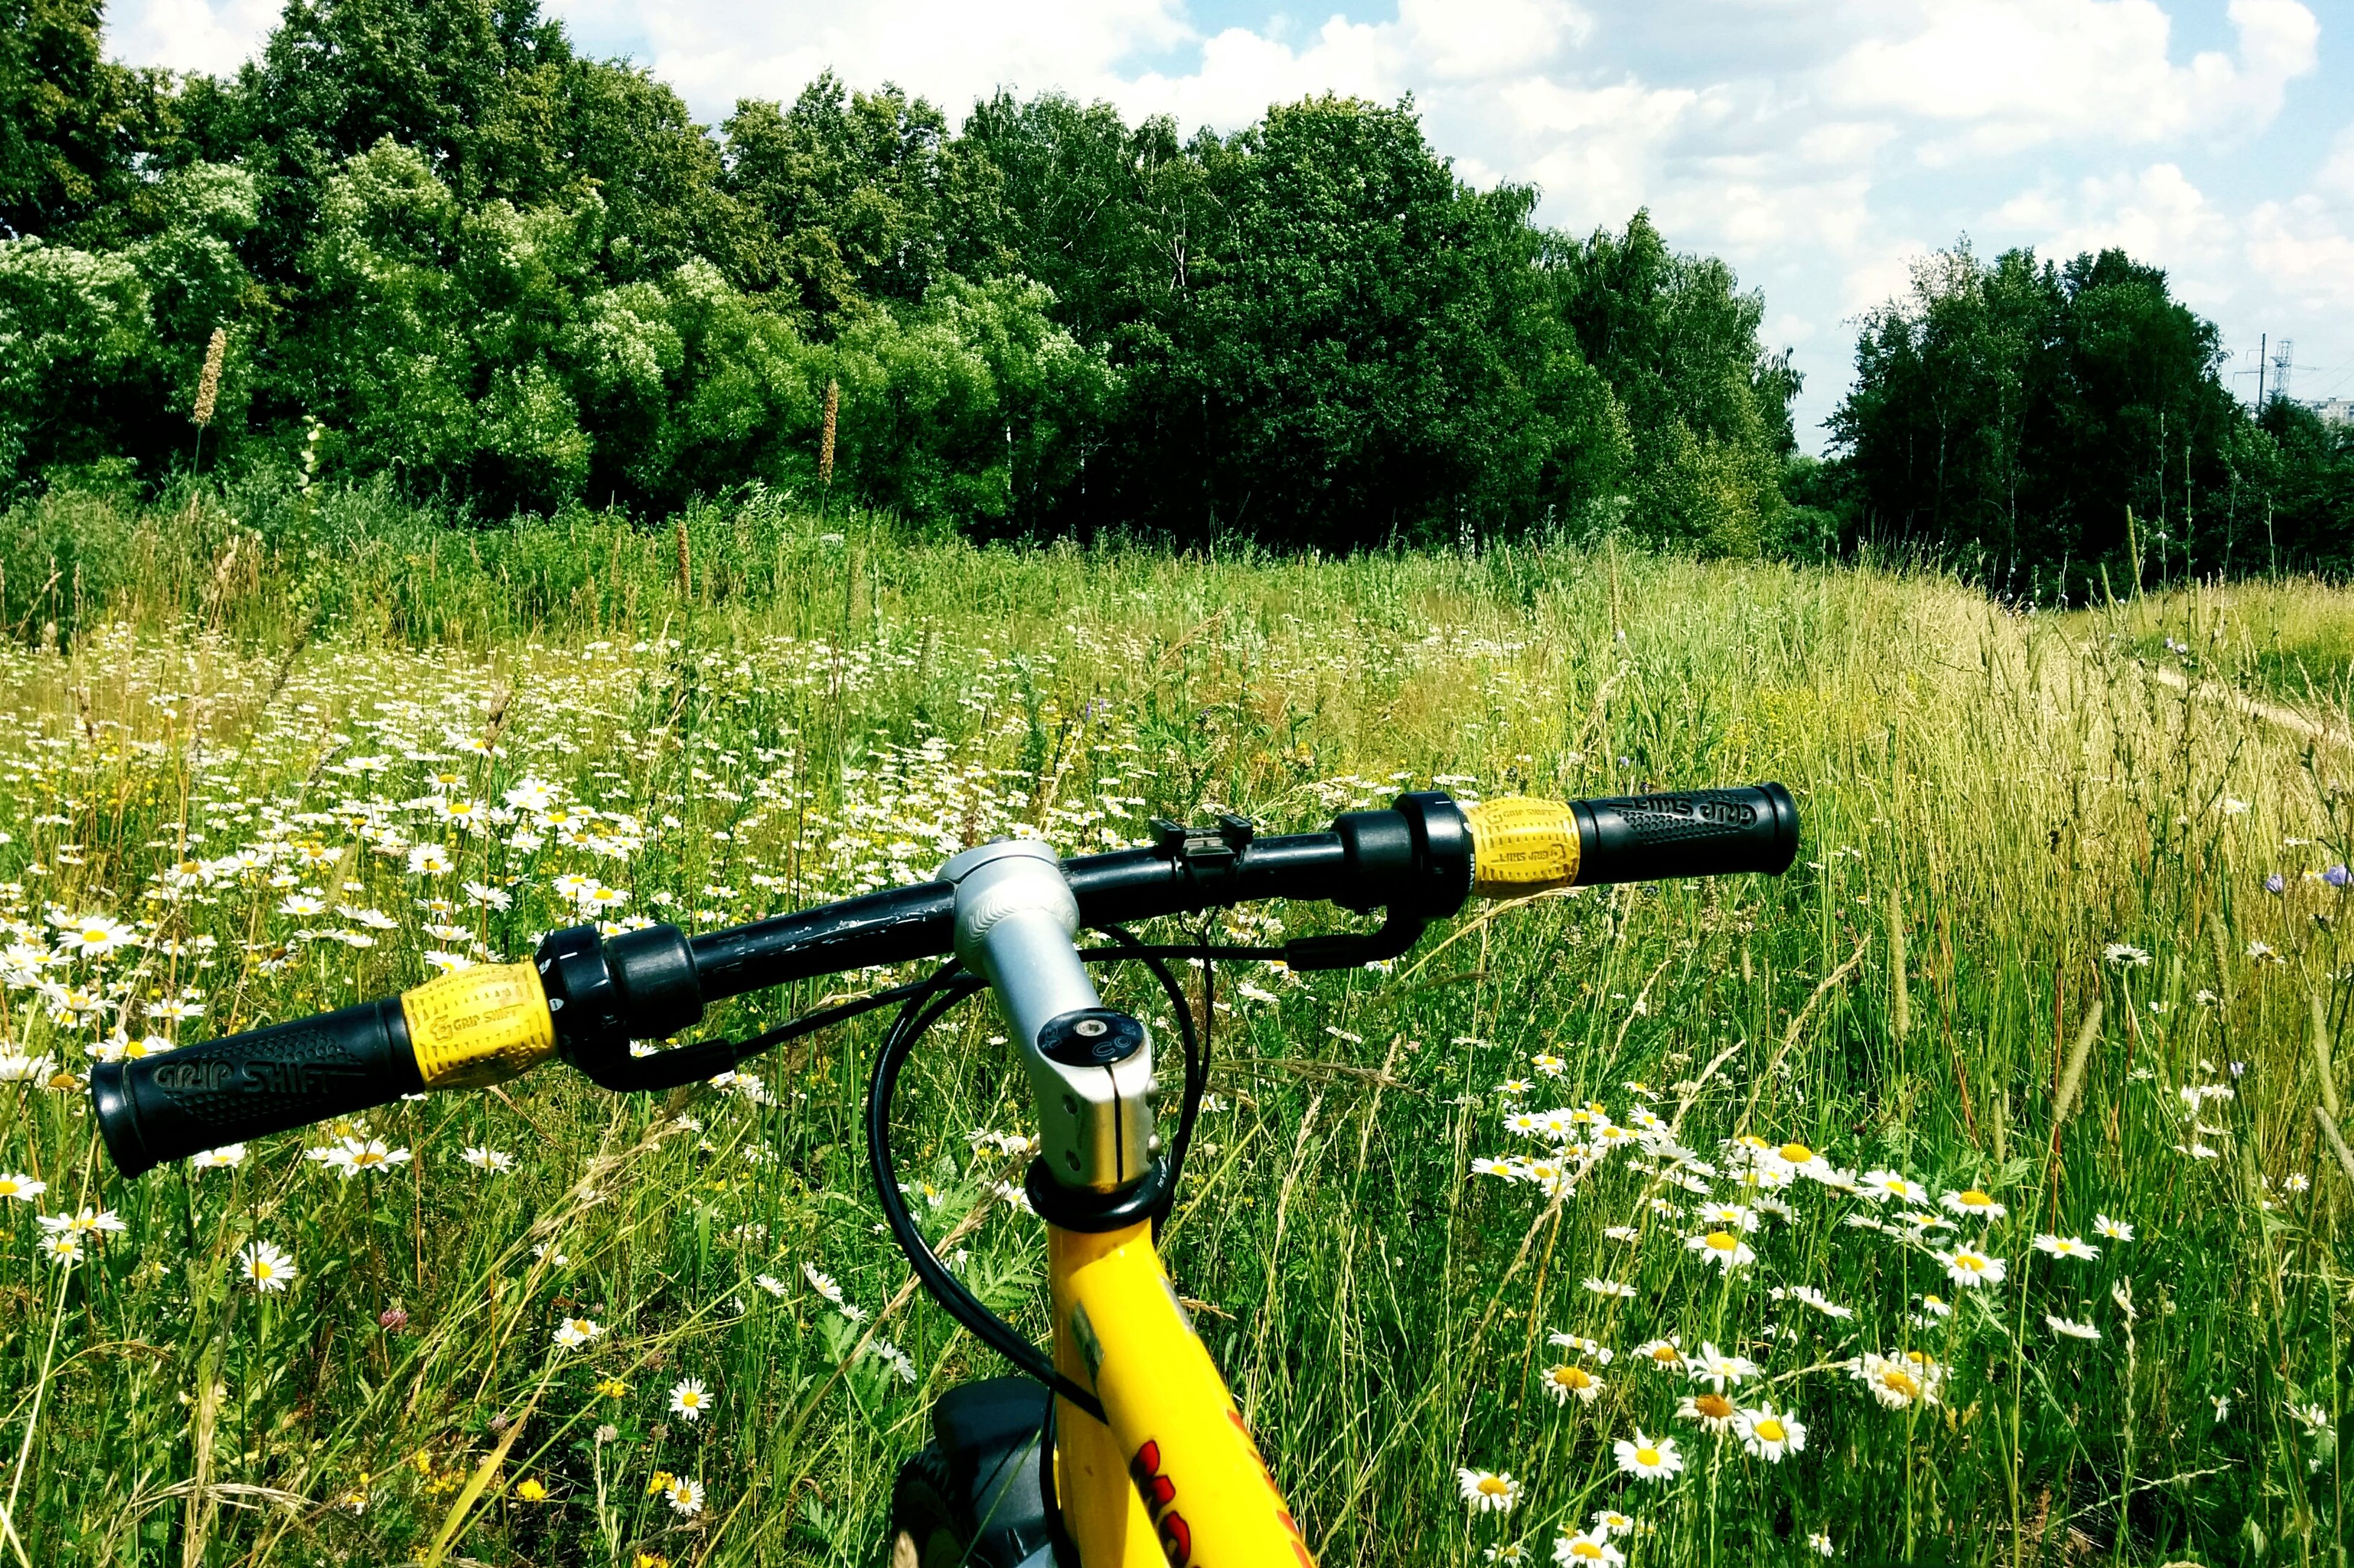 grass, field, grassy, transportation, green color, land vehicle, growth, tree, landscape, day, mode of transport, sky, tranquility, sport, agriculture, outdoors, nature, bicycle, protection, no people